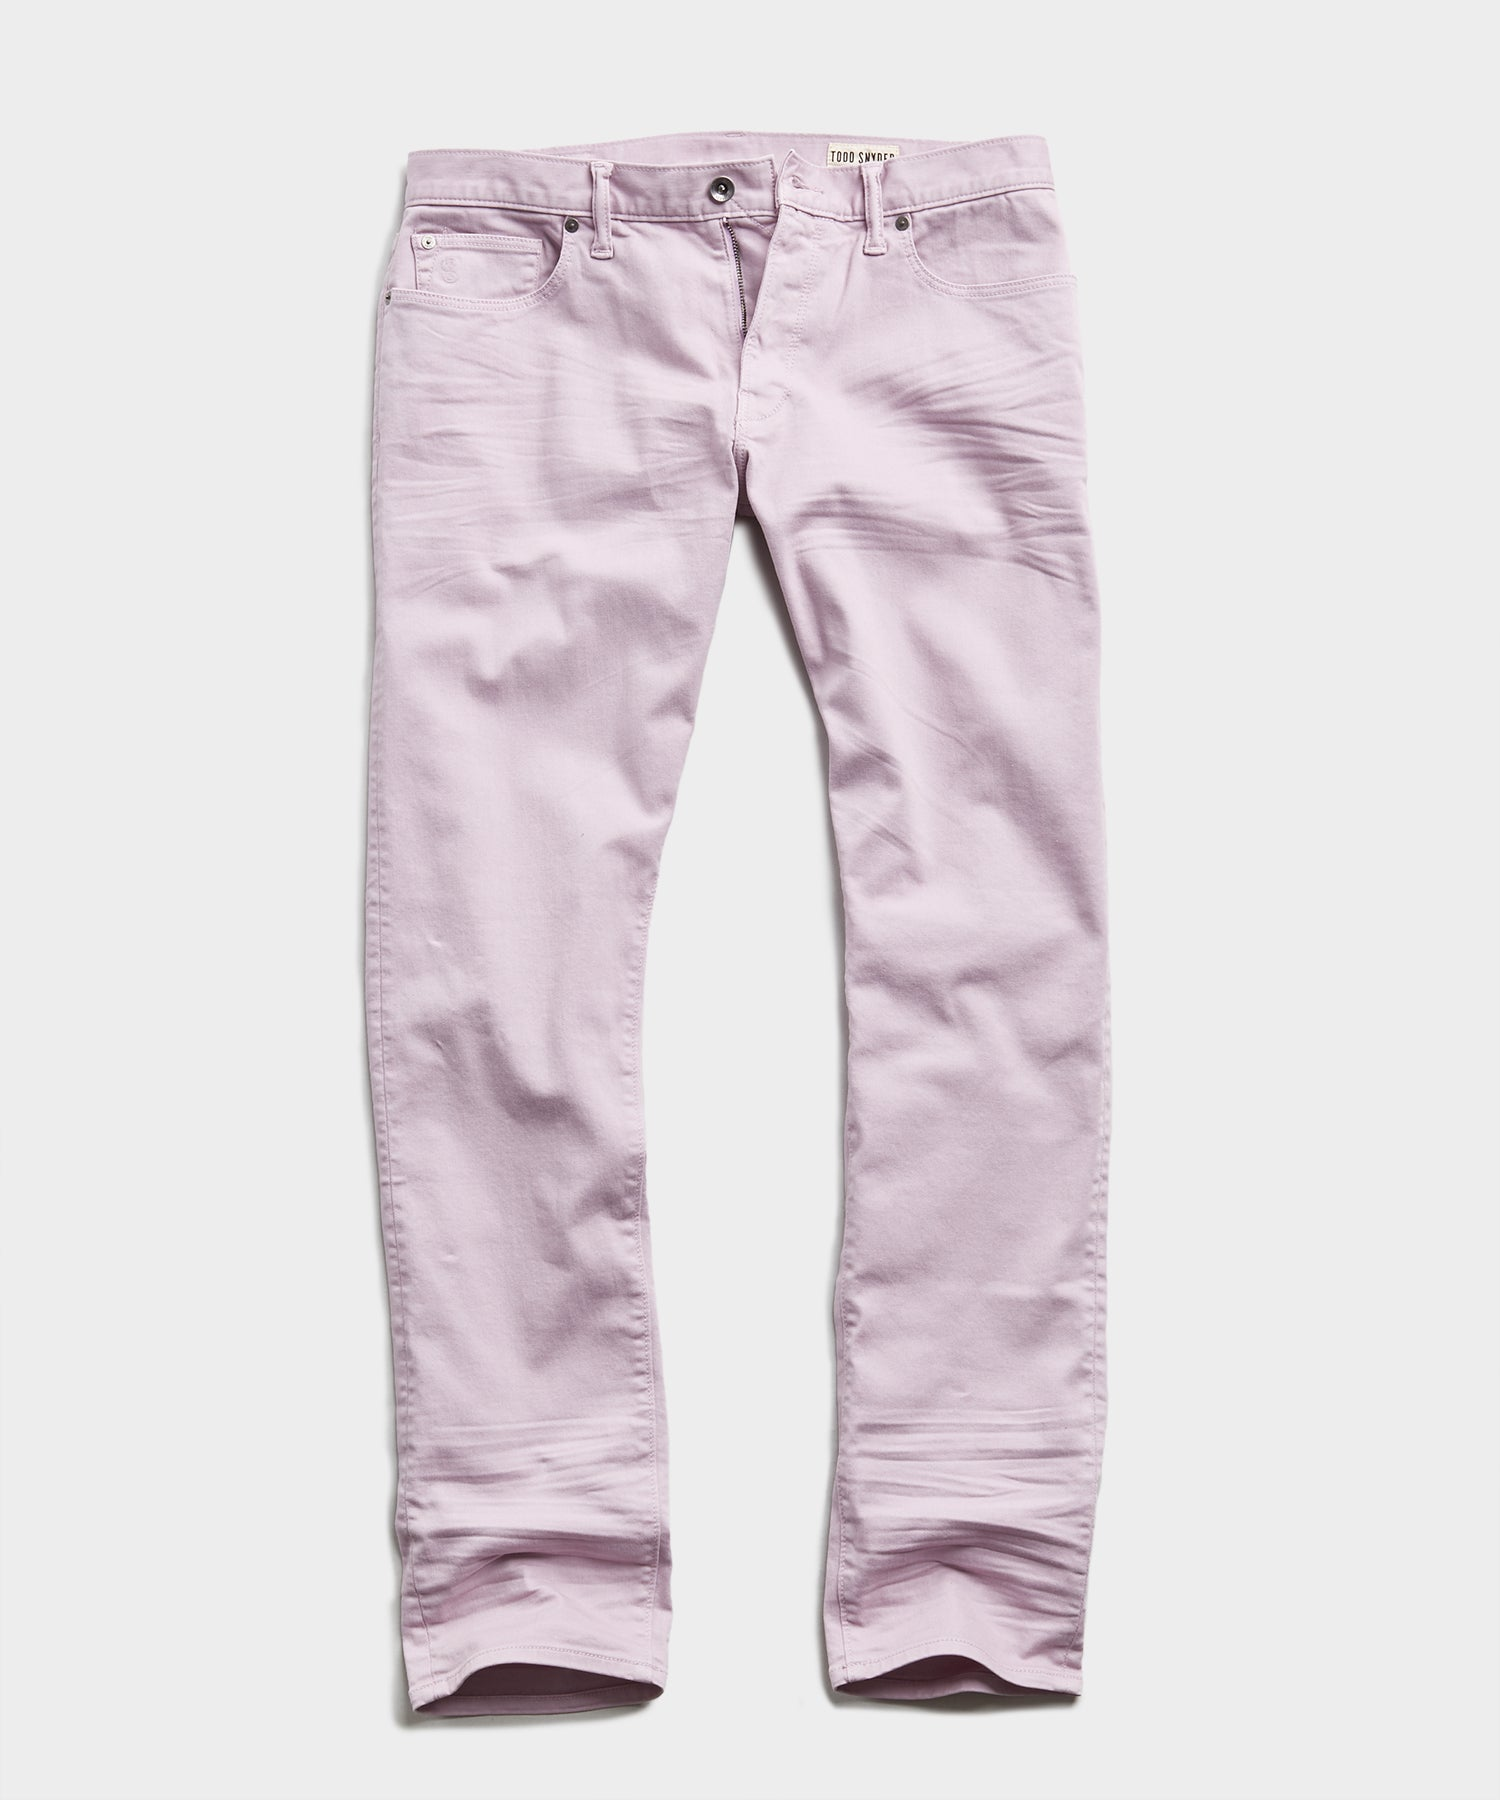 SLIM FIT 5-POCKET CHINO IN LAVENDER